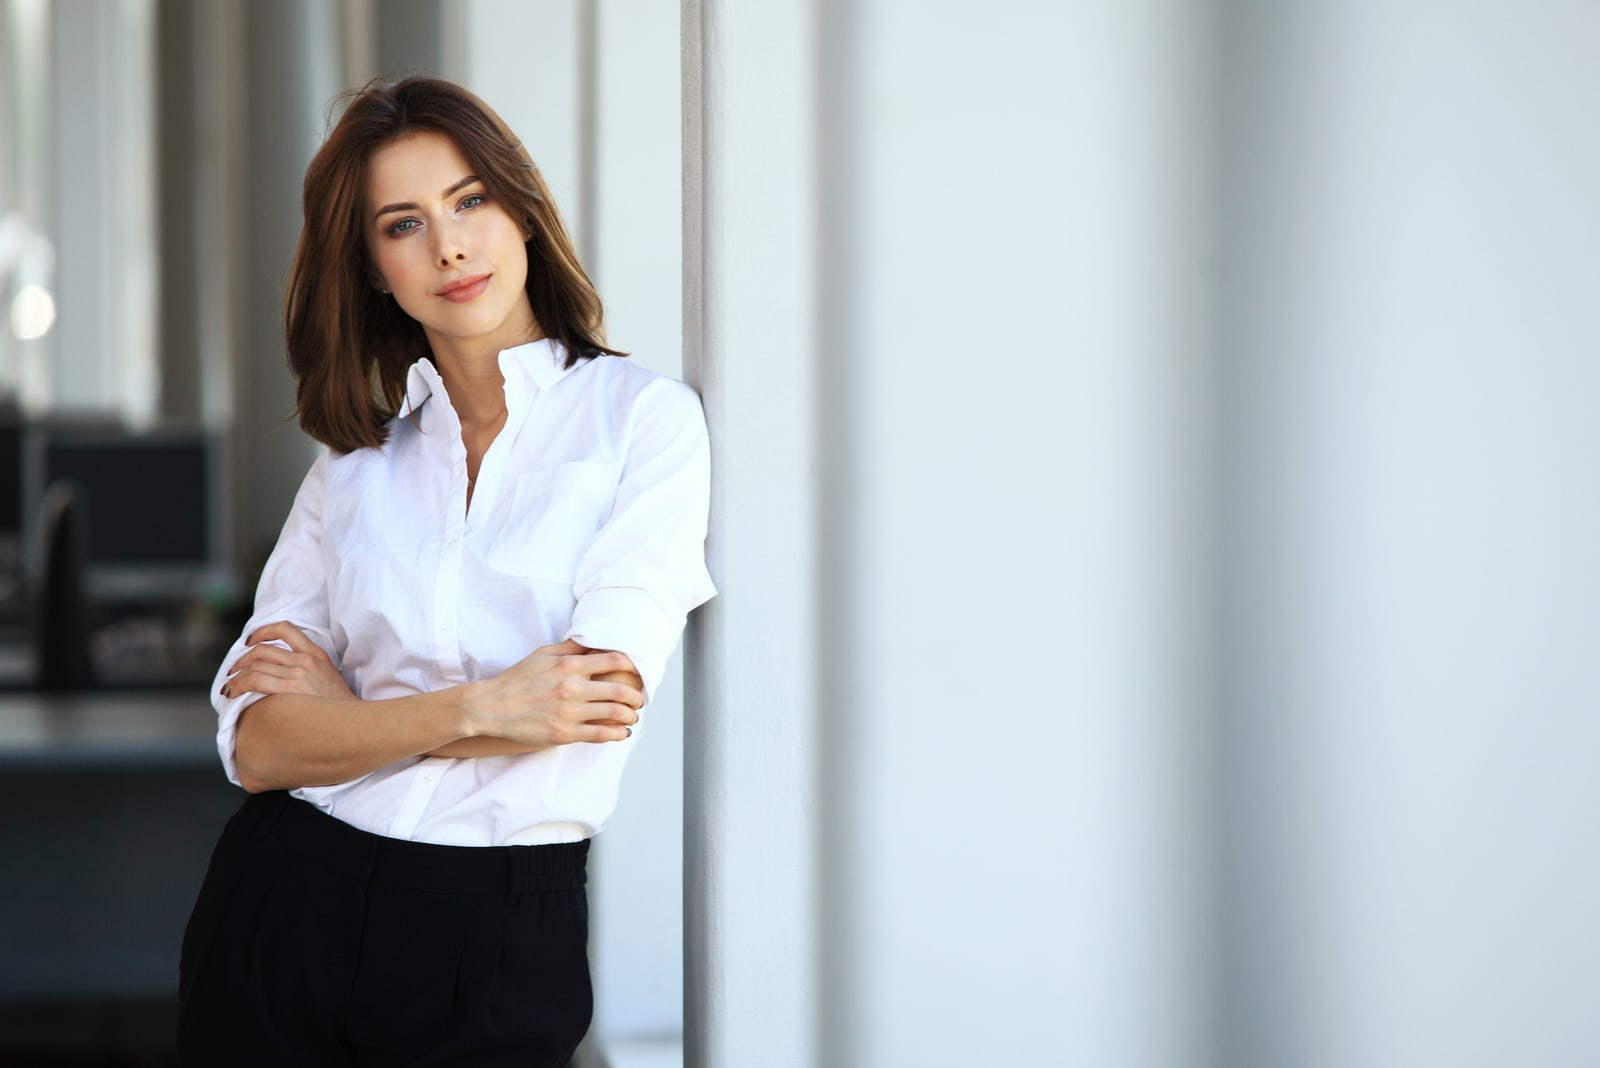 a determined woman in a white shirt stands by the window